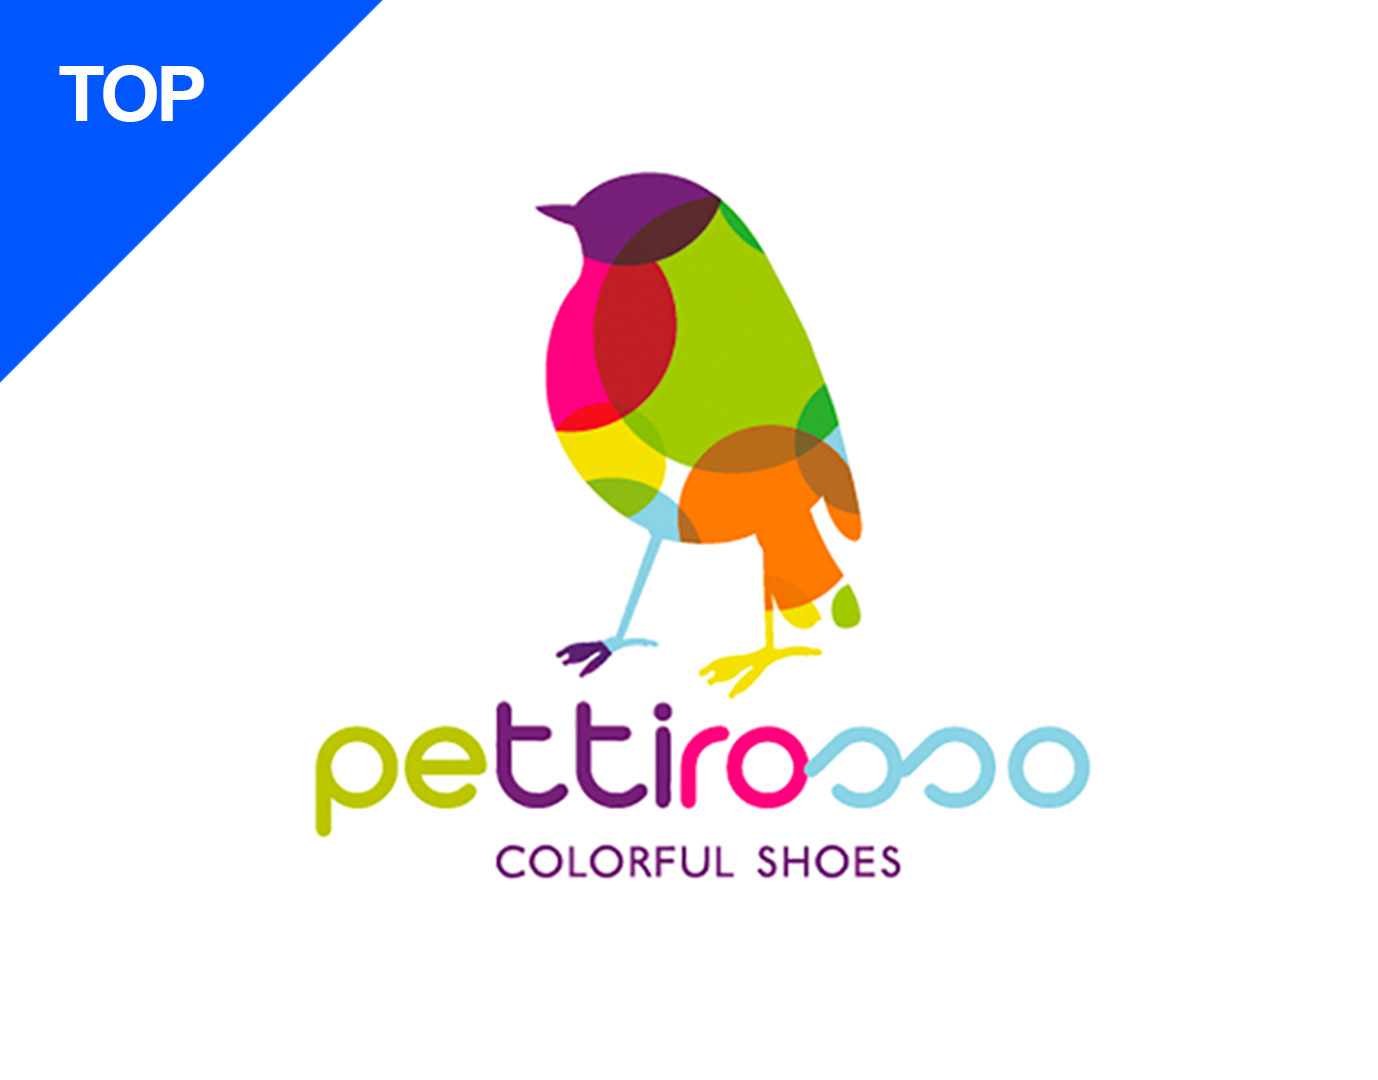 Pettirosso - Colorful shoes